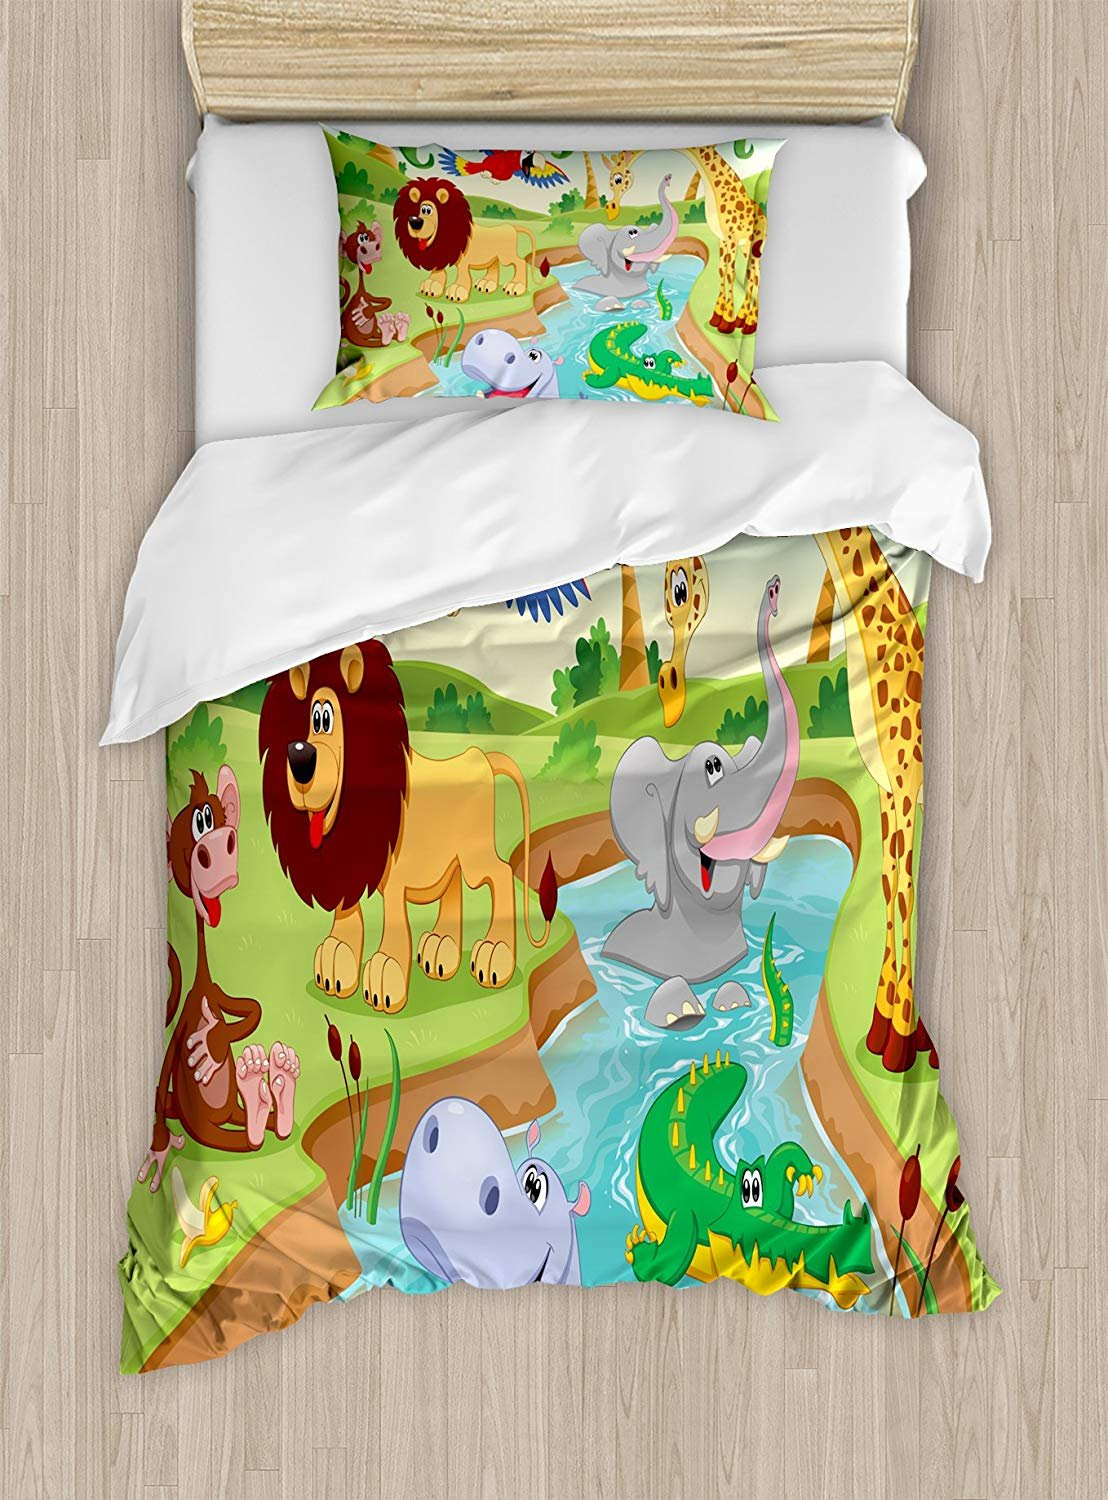 Twin XL Extra Long Bedding Set,Children Duvet Cover Set,Cartoon Safari African Animals Swimming in the Lake Elephant Lions and Giraffe Art,Cosy House Collection 4 Piece Bedding Sets